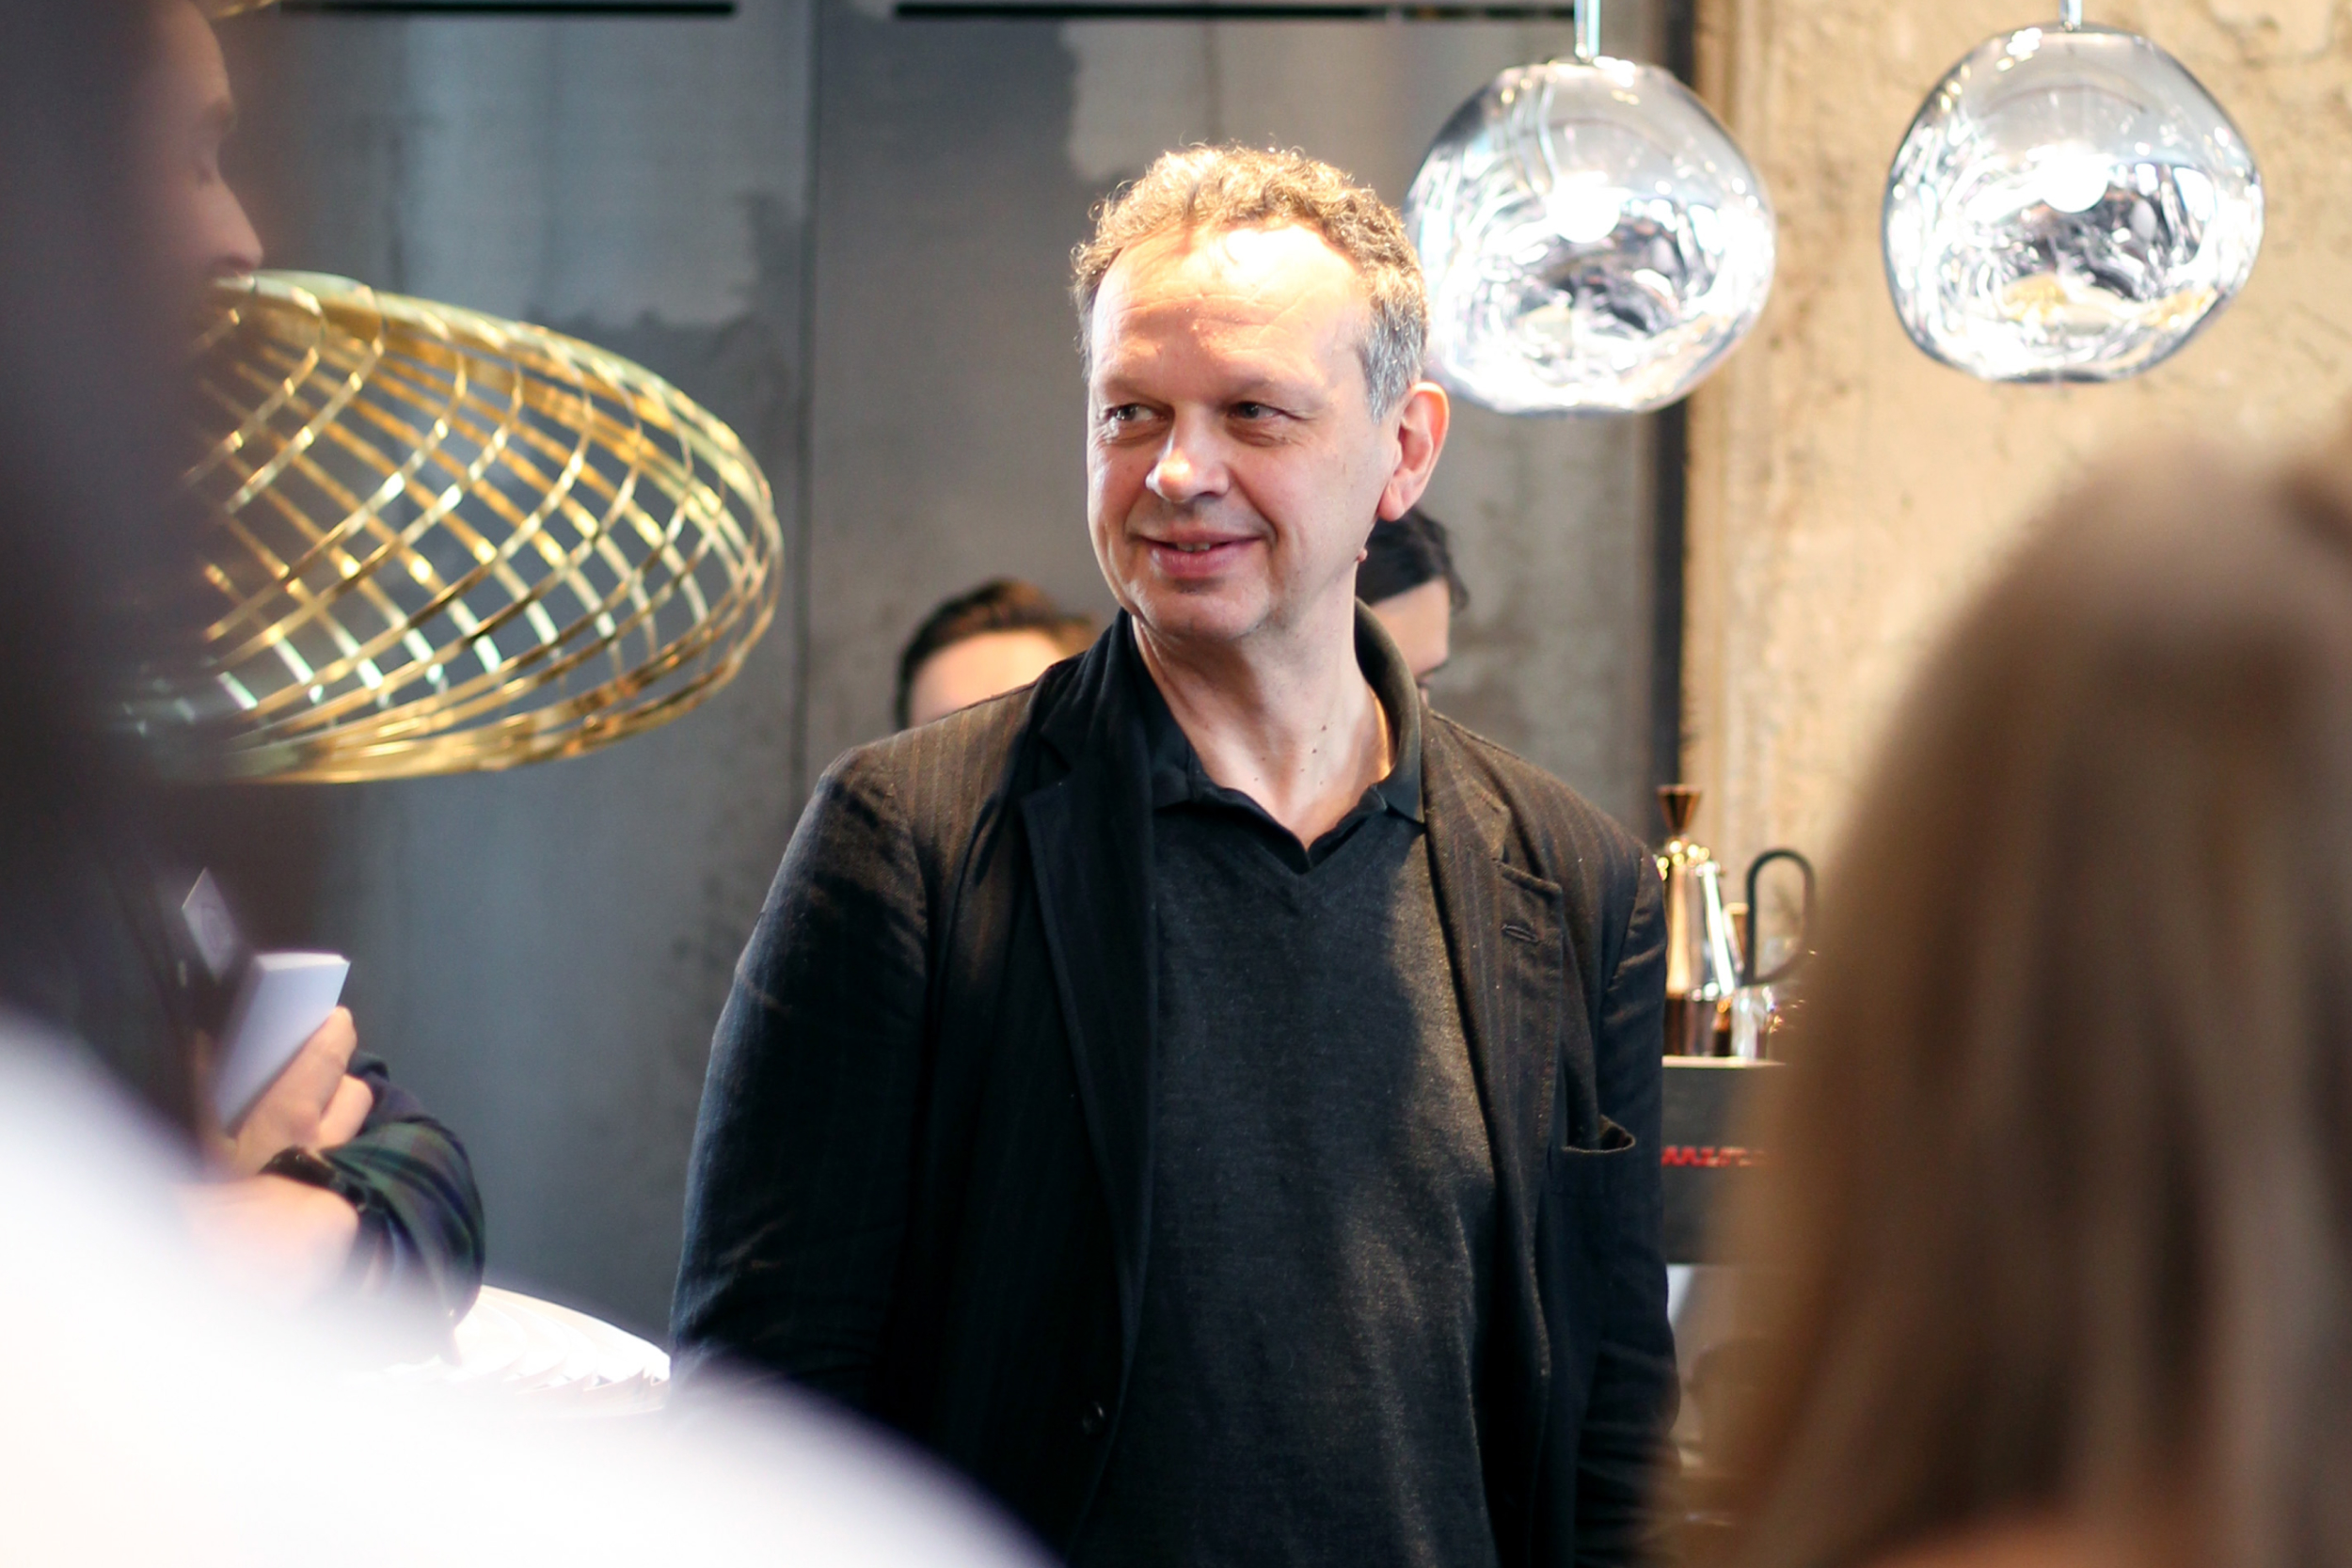 Breakfast Insights at The Coal Office with Tom Dixon